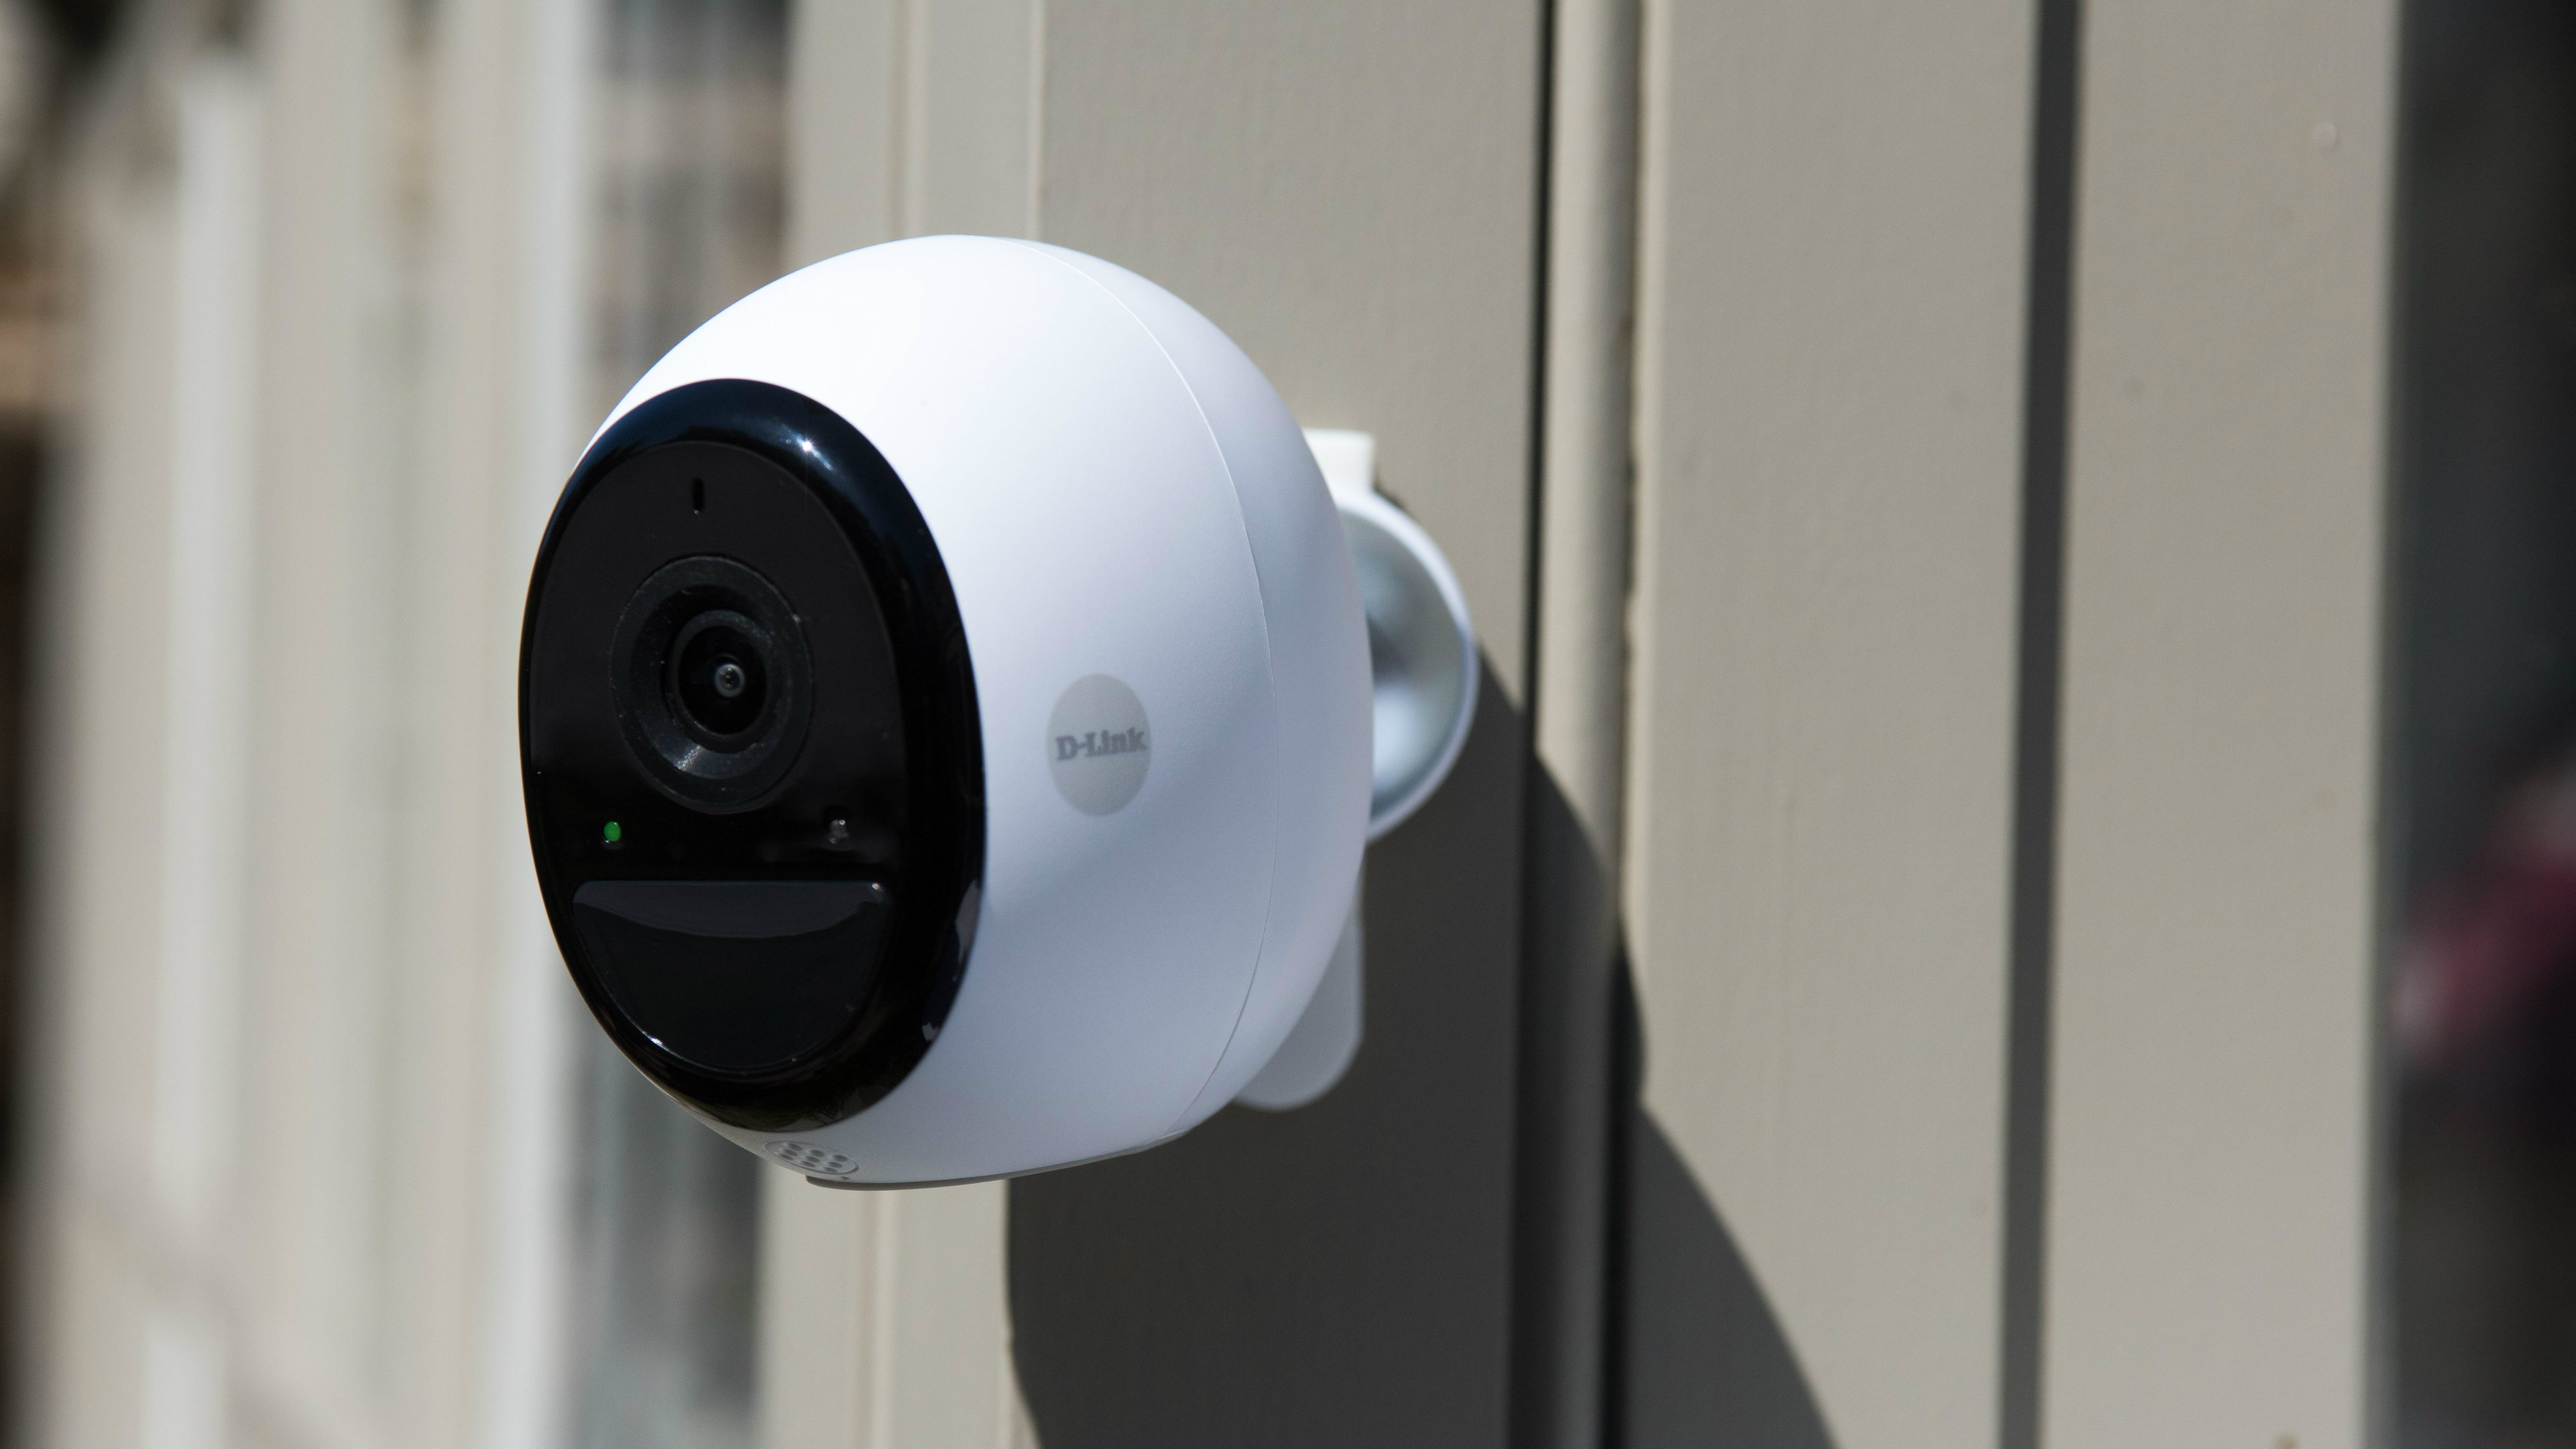 D Link Dcs 2802kt Review A Smart And Simple Security